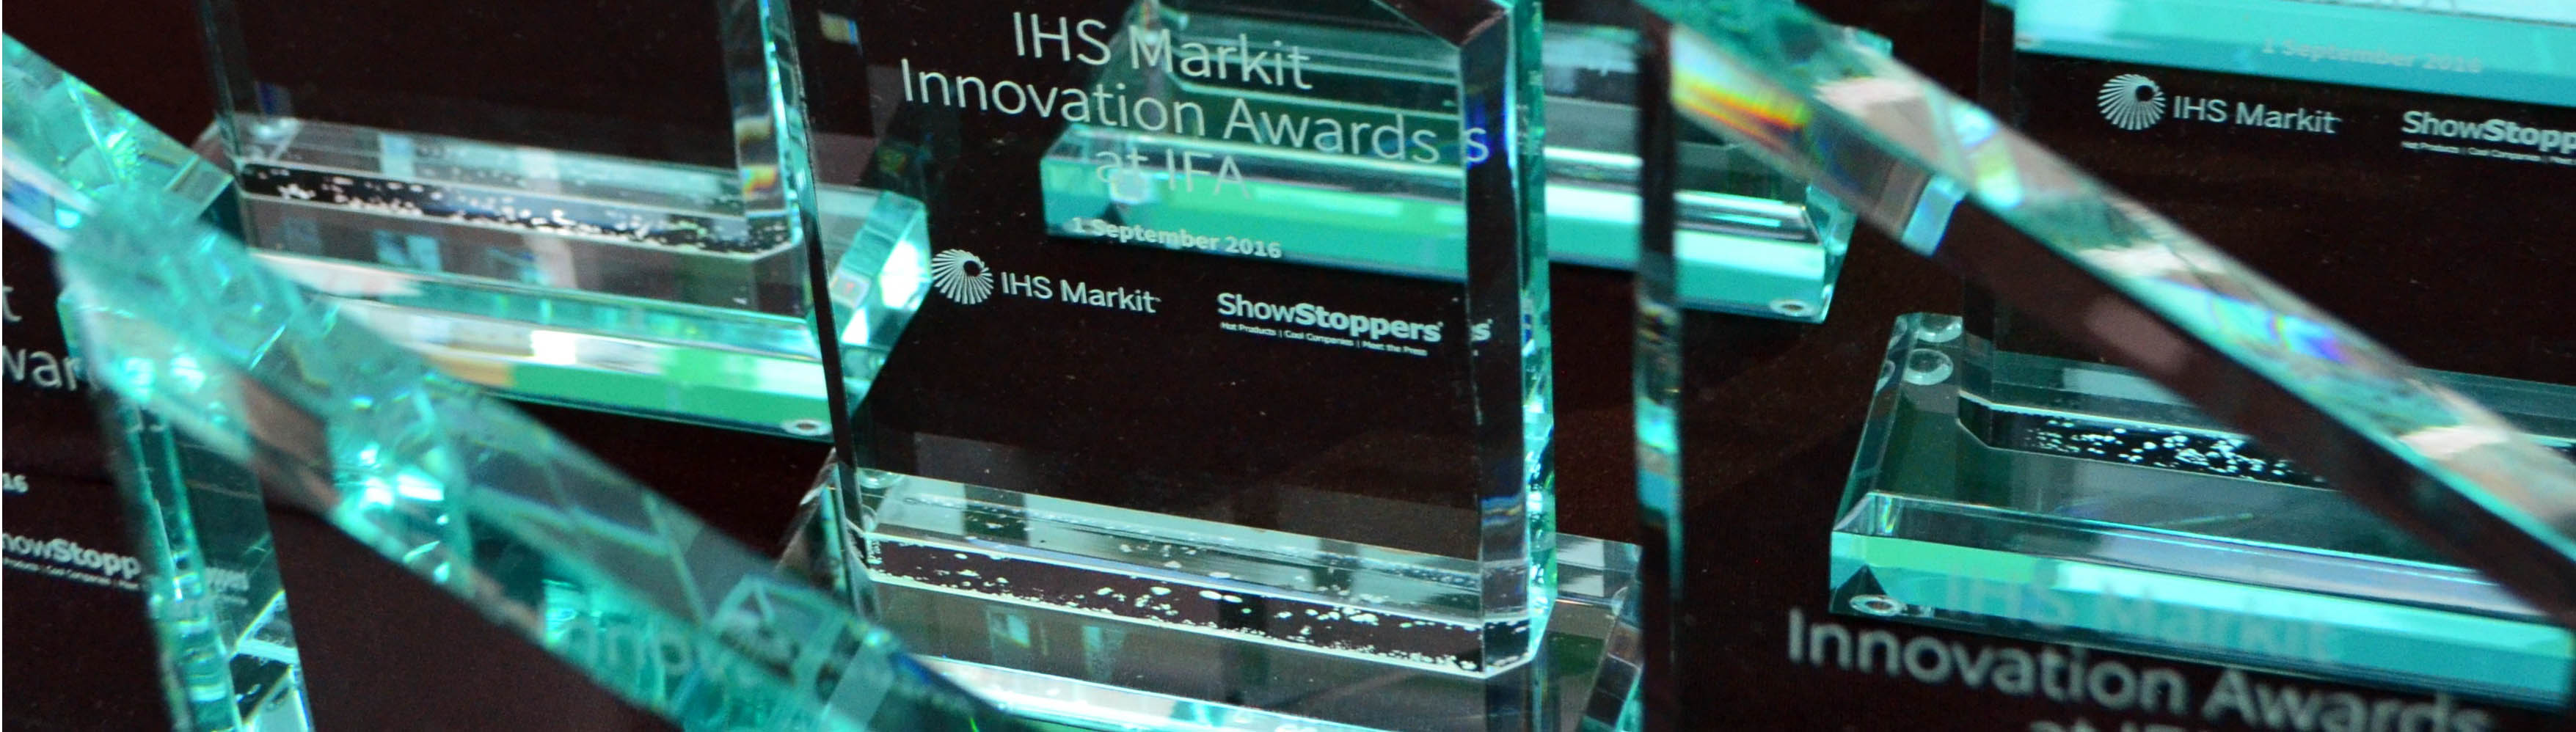 2018 IHS Markit Innovation Awards